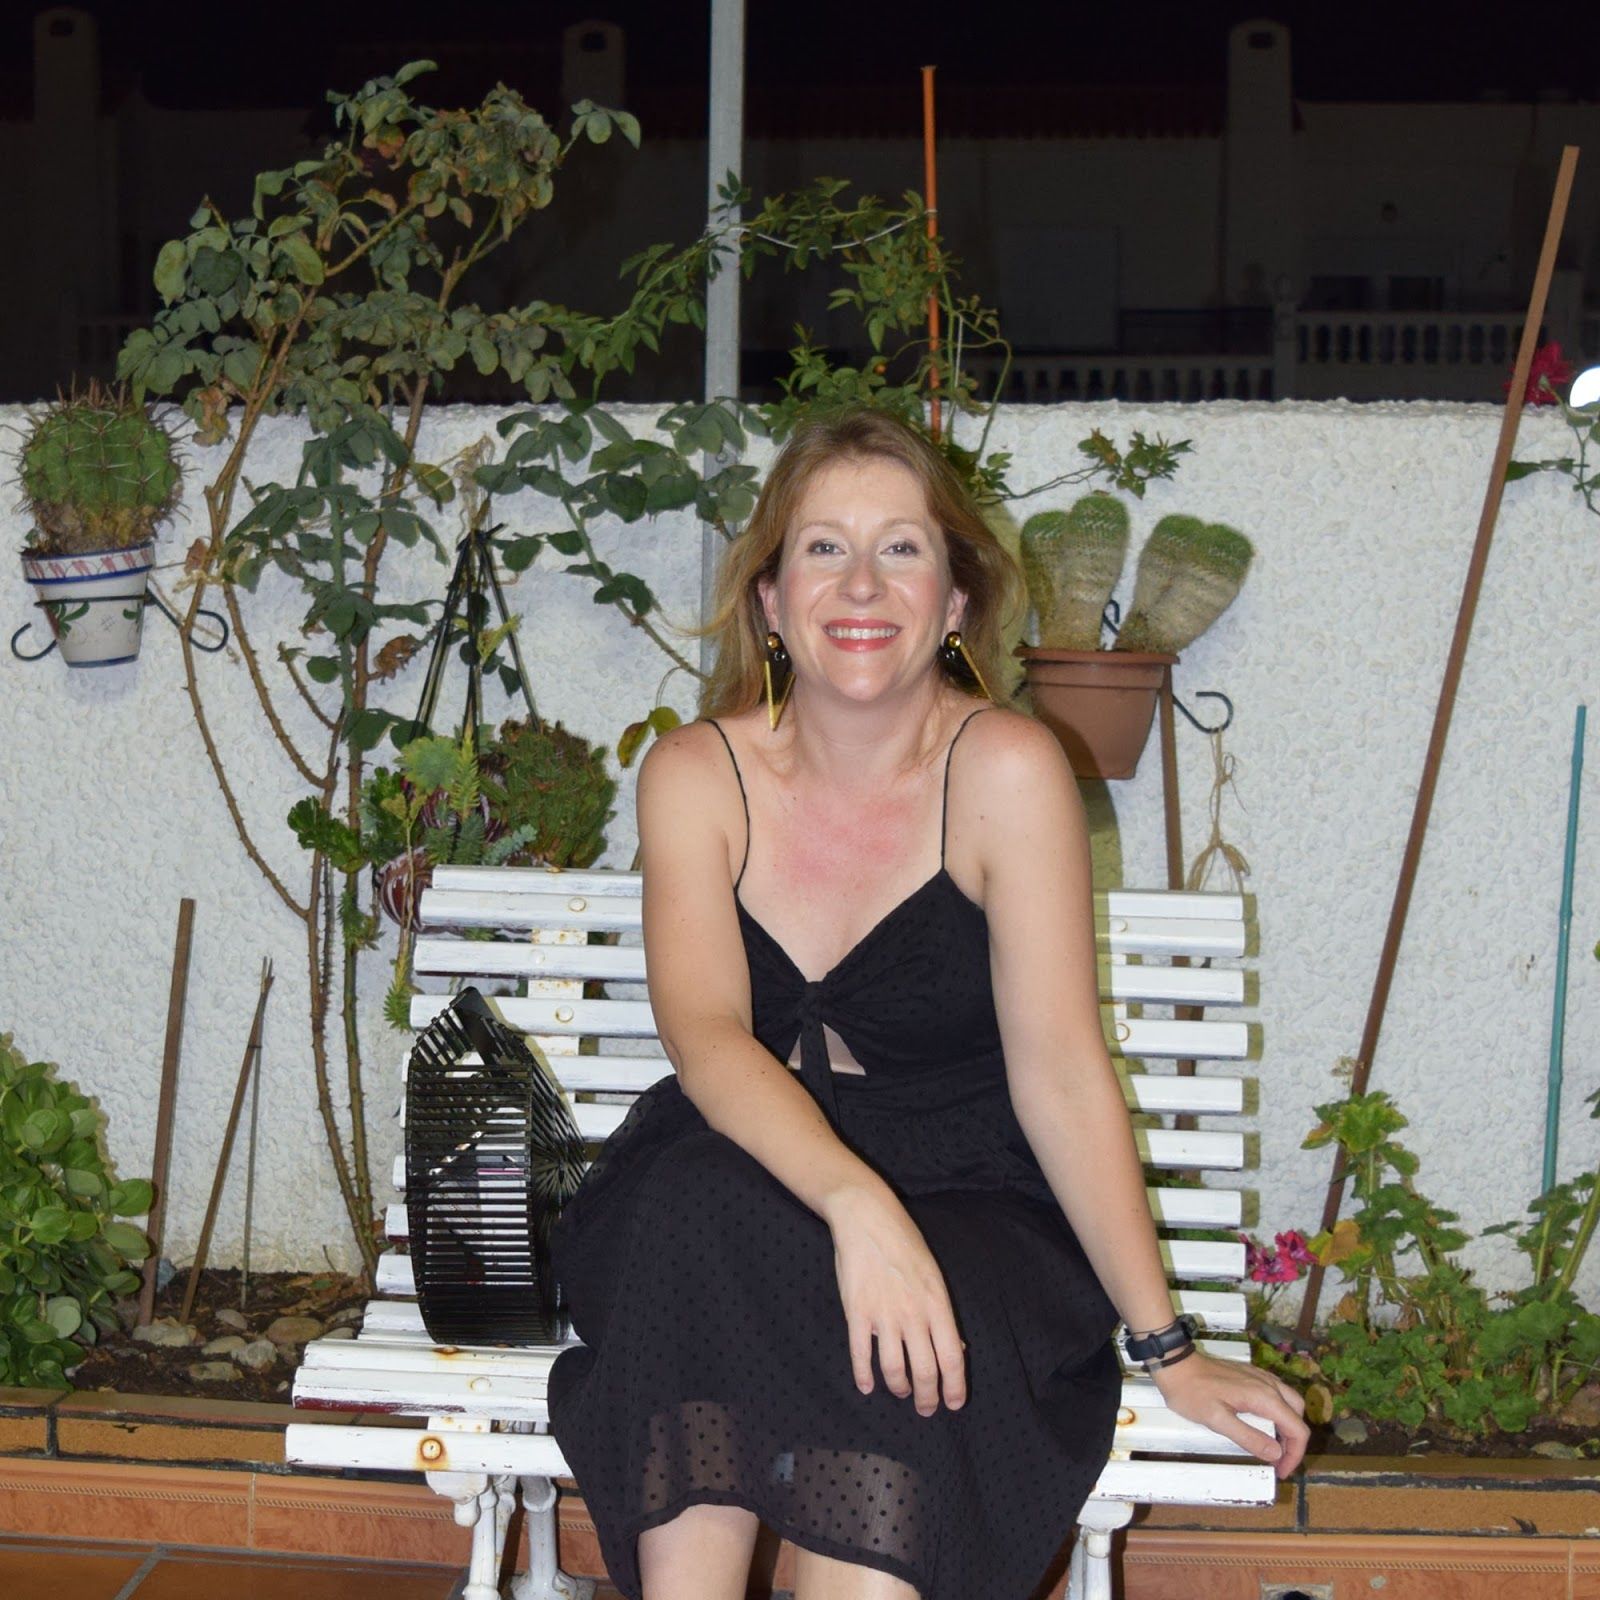 night_black_dress_verano_summer